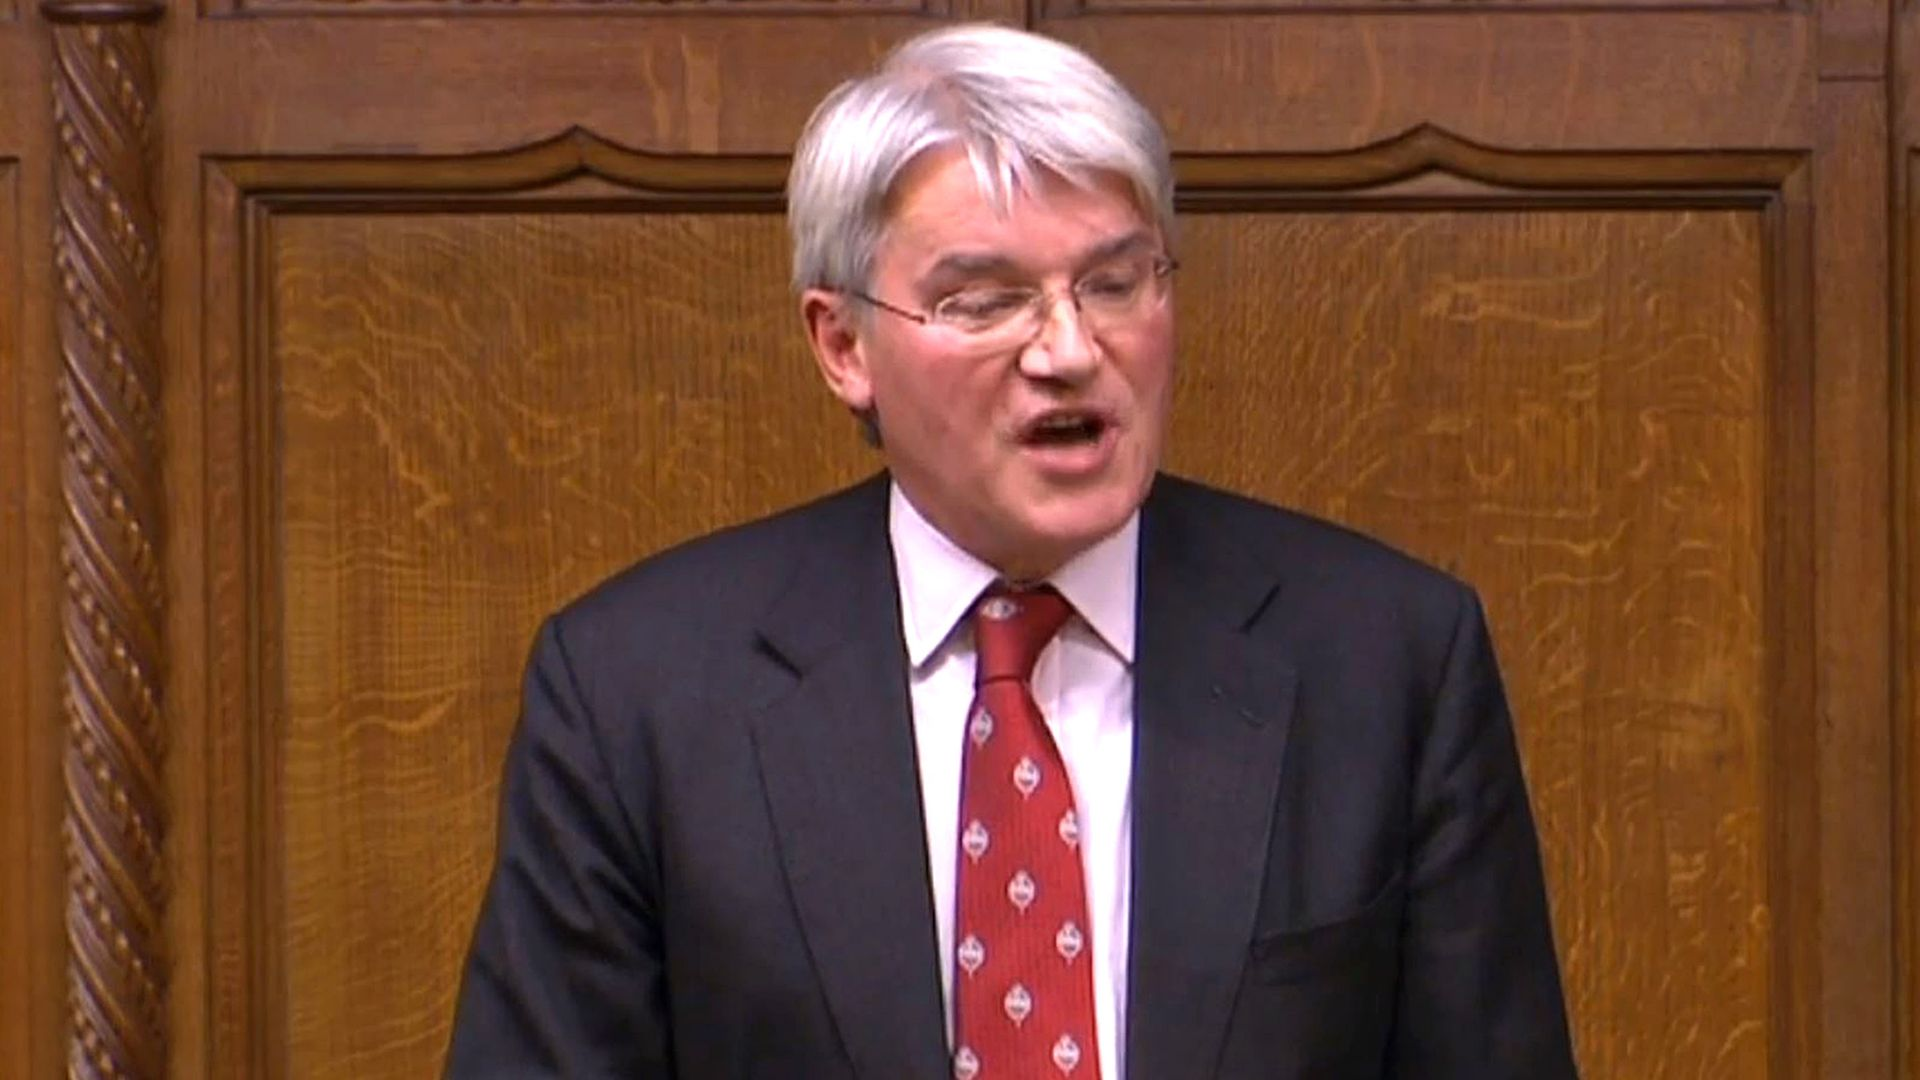 Conservative MP Andrew Mitchell speaks during an emergency debate on international action to protect civilians in Aleppo, Syria, in the House of Commons, London. - Credit: PA